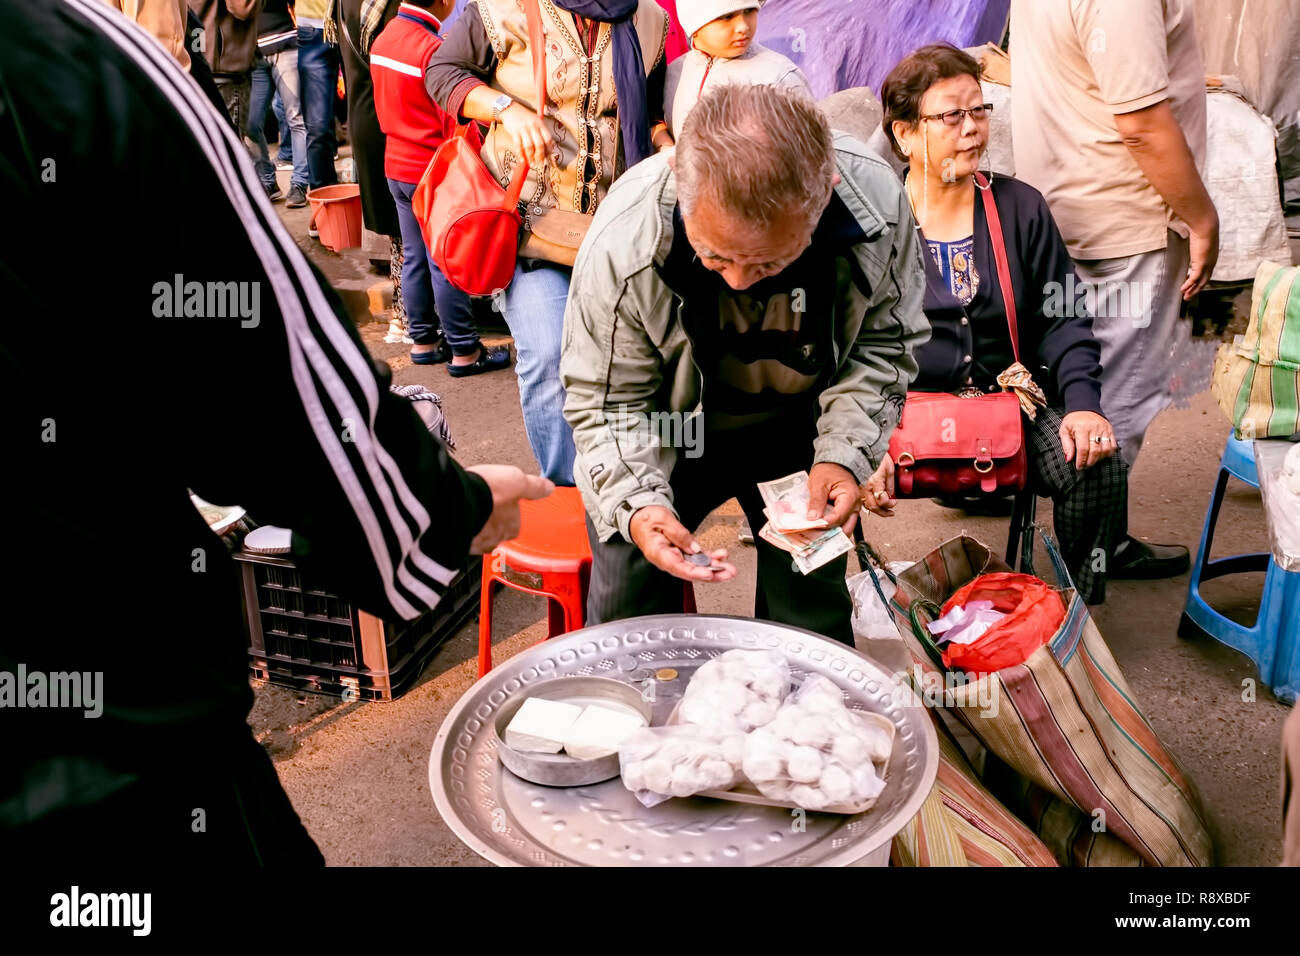 Sreet life,Chinese street food,hot dumplings,sellers,puchasers, Territy Bazar,Chinese,Indian,visit ,on,Sunday morning,India Exchange Place,Kolkata, In Stock Photo